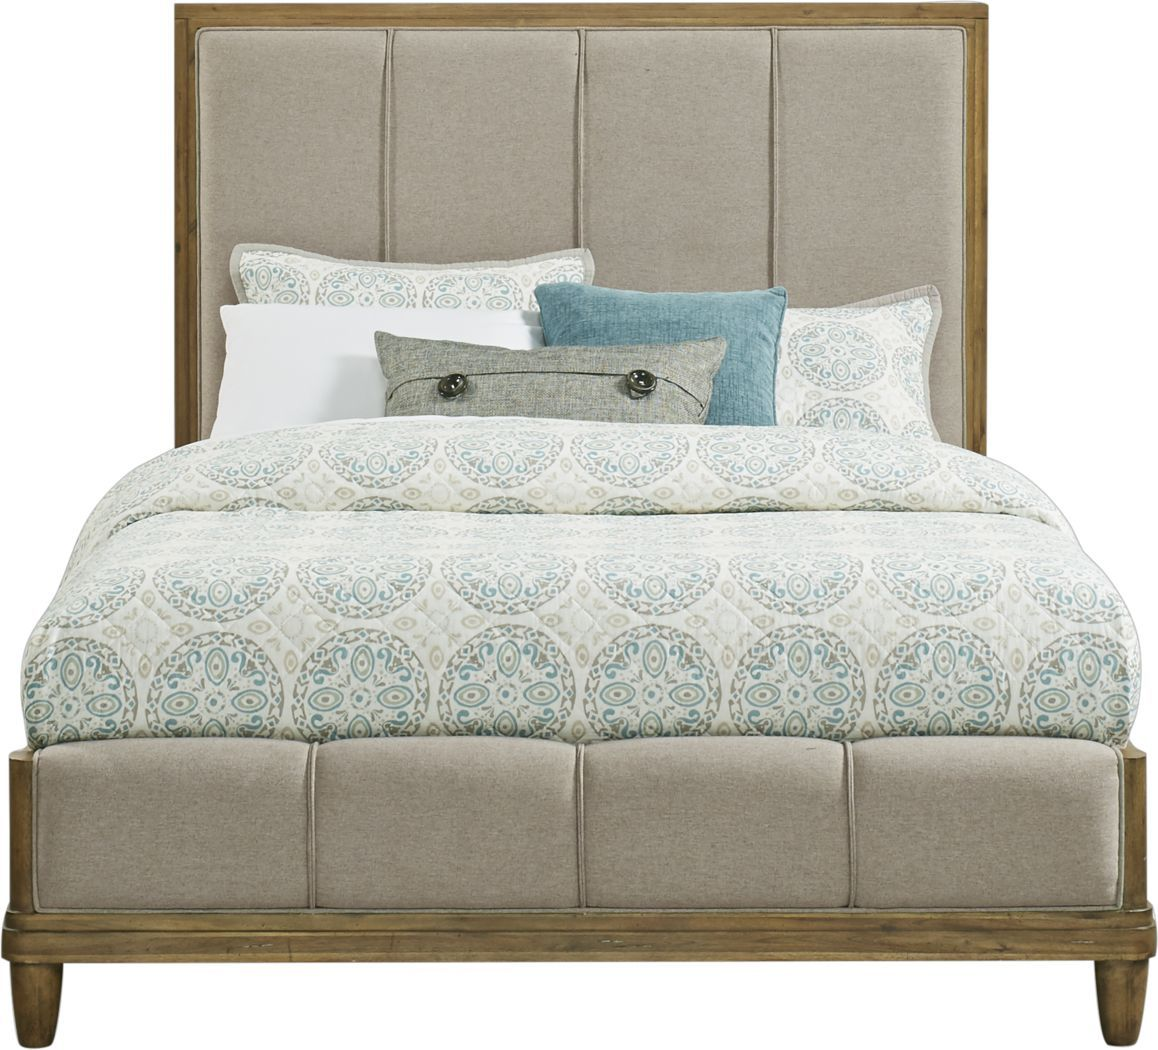 Cindy Crawford Home Aspen Lakes Hickory 3 Pc Queen Upholstered Bed